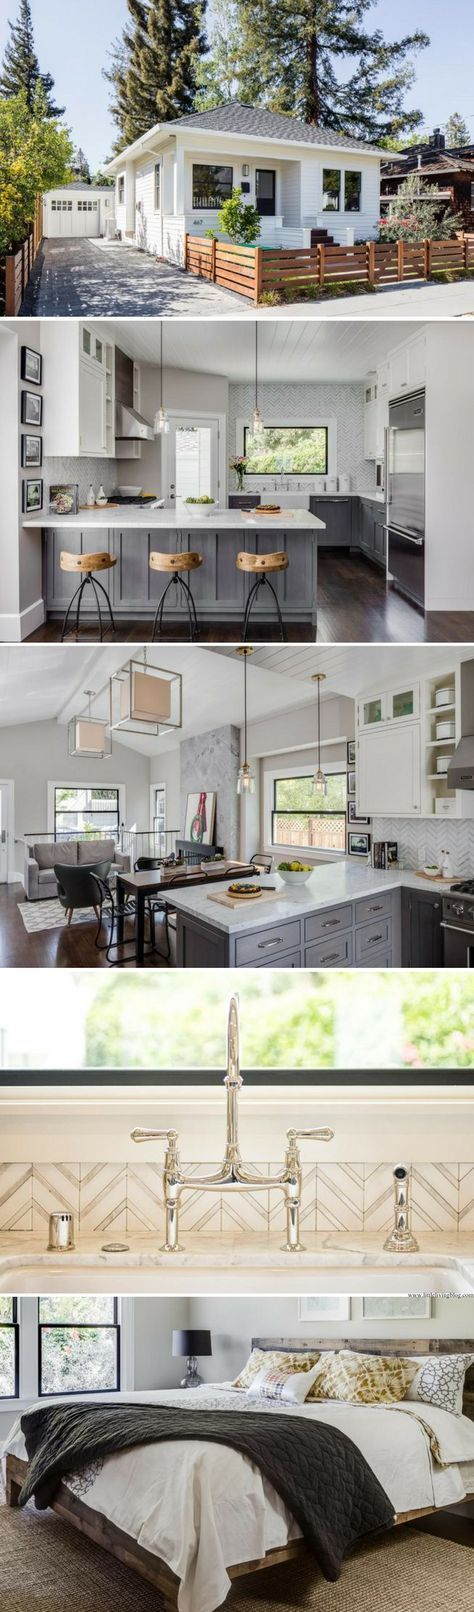 A Napa Valley Cottage Designed By Lindsay Chambers. Small House Interior ...